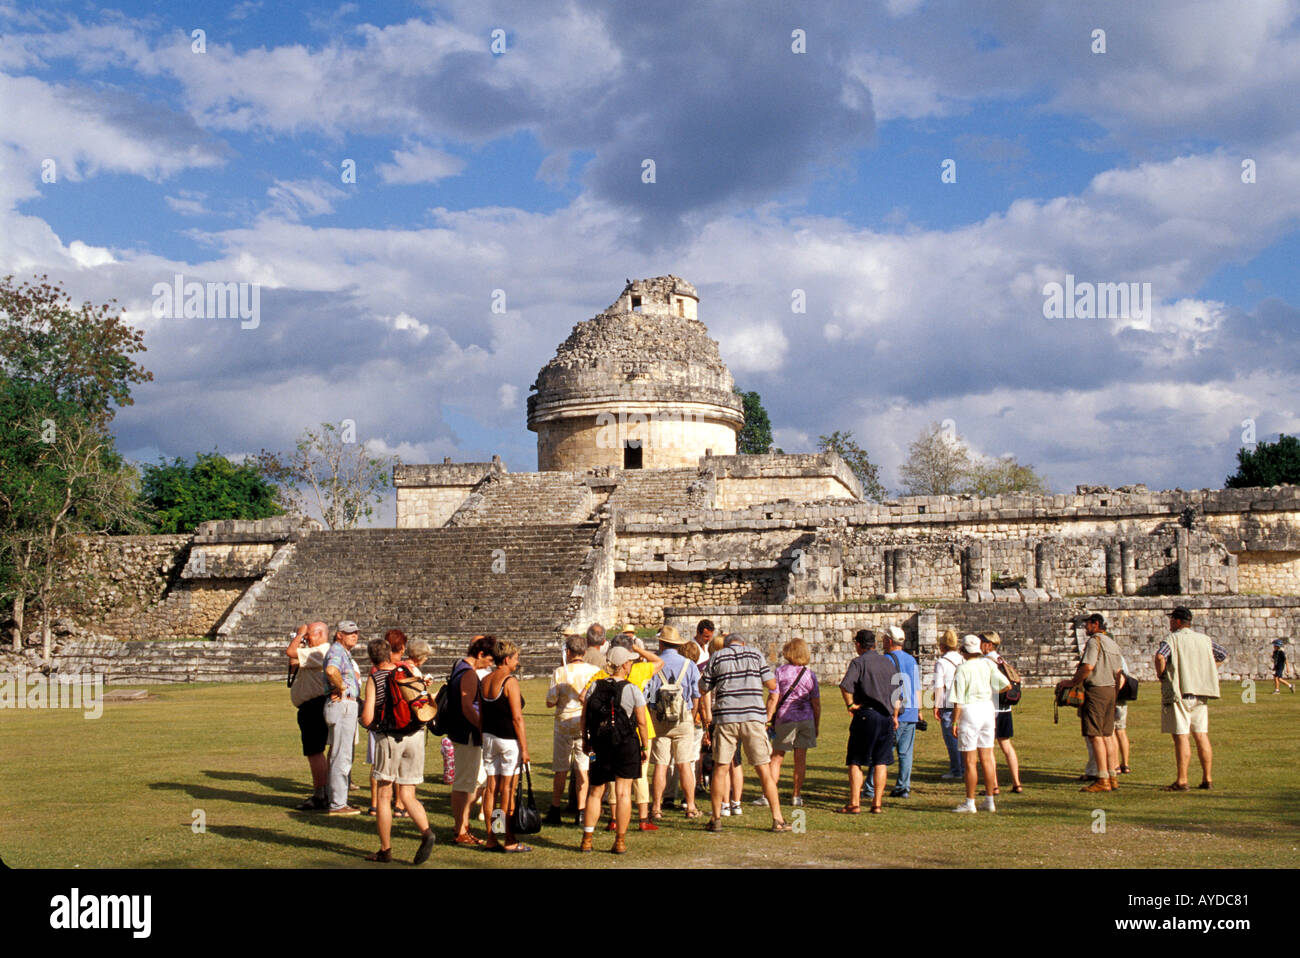 Chichen Itza The Observatory group of tourists on tour cruise excursion tourist tours Mayan archaeological site Mexico - Stock Image